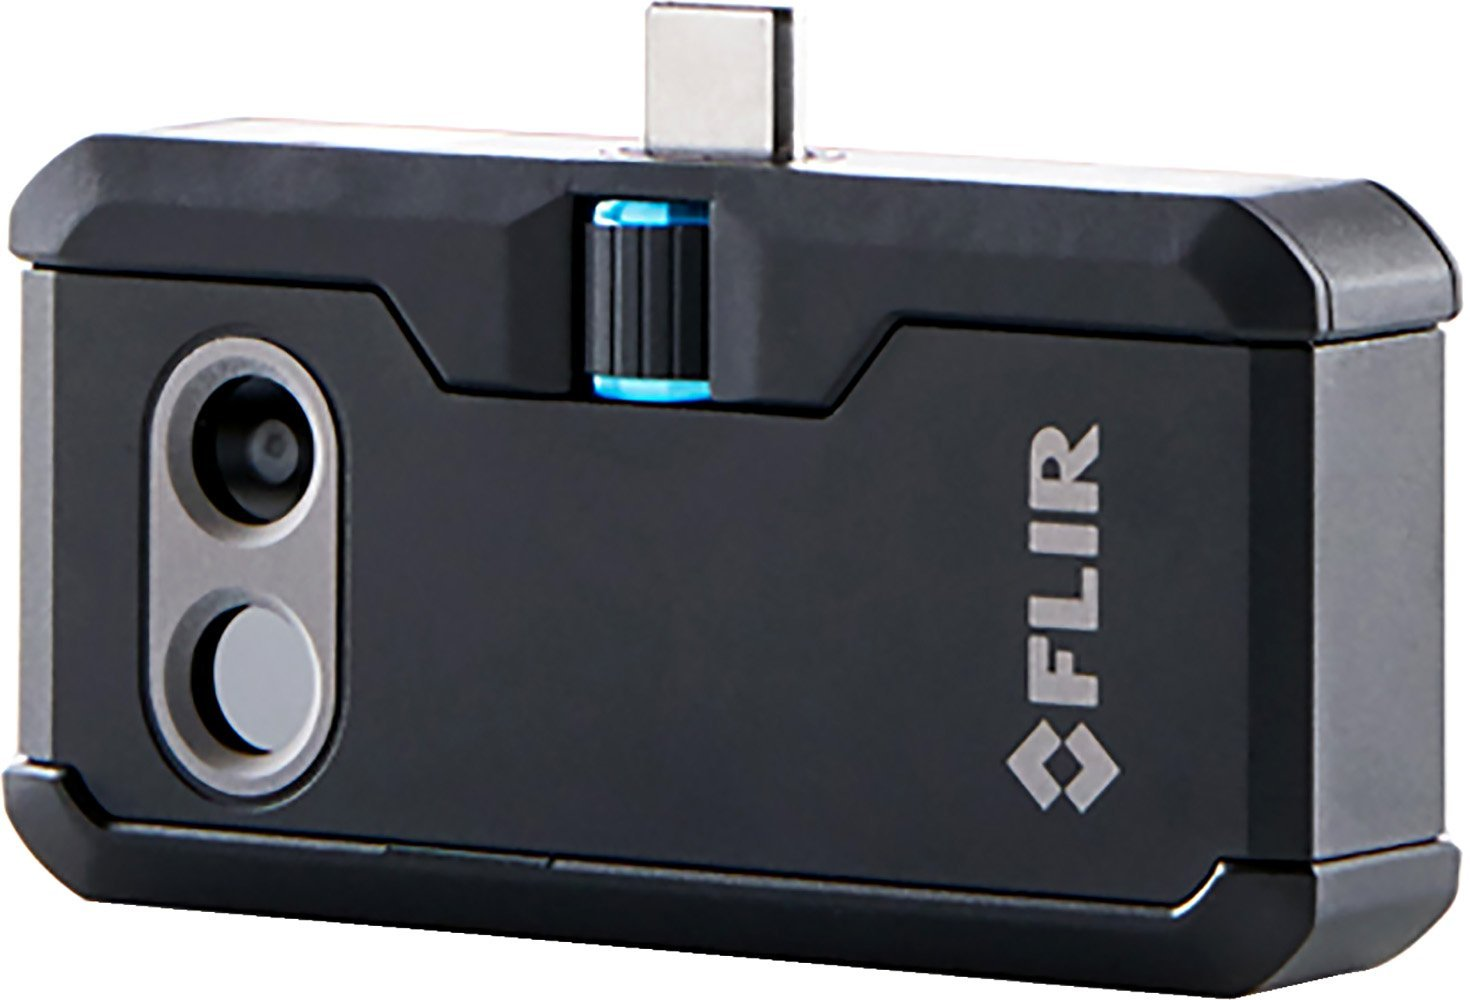 FLIR ONE Pro Thermal Imaging Camera for Android USB-C - 435-0007-02